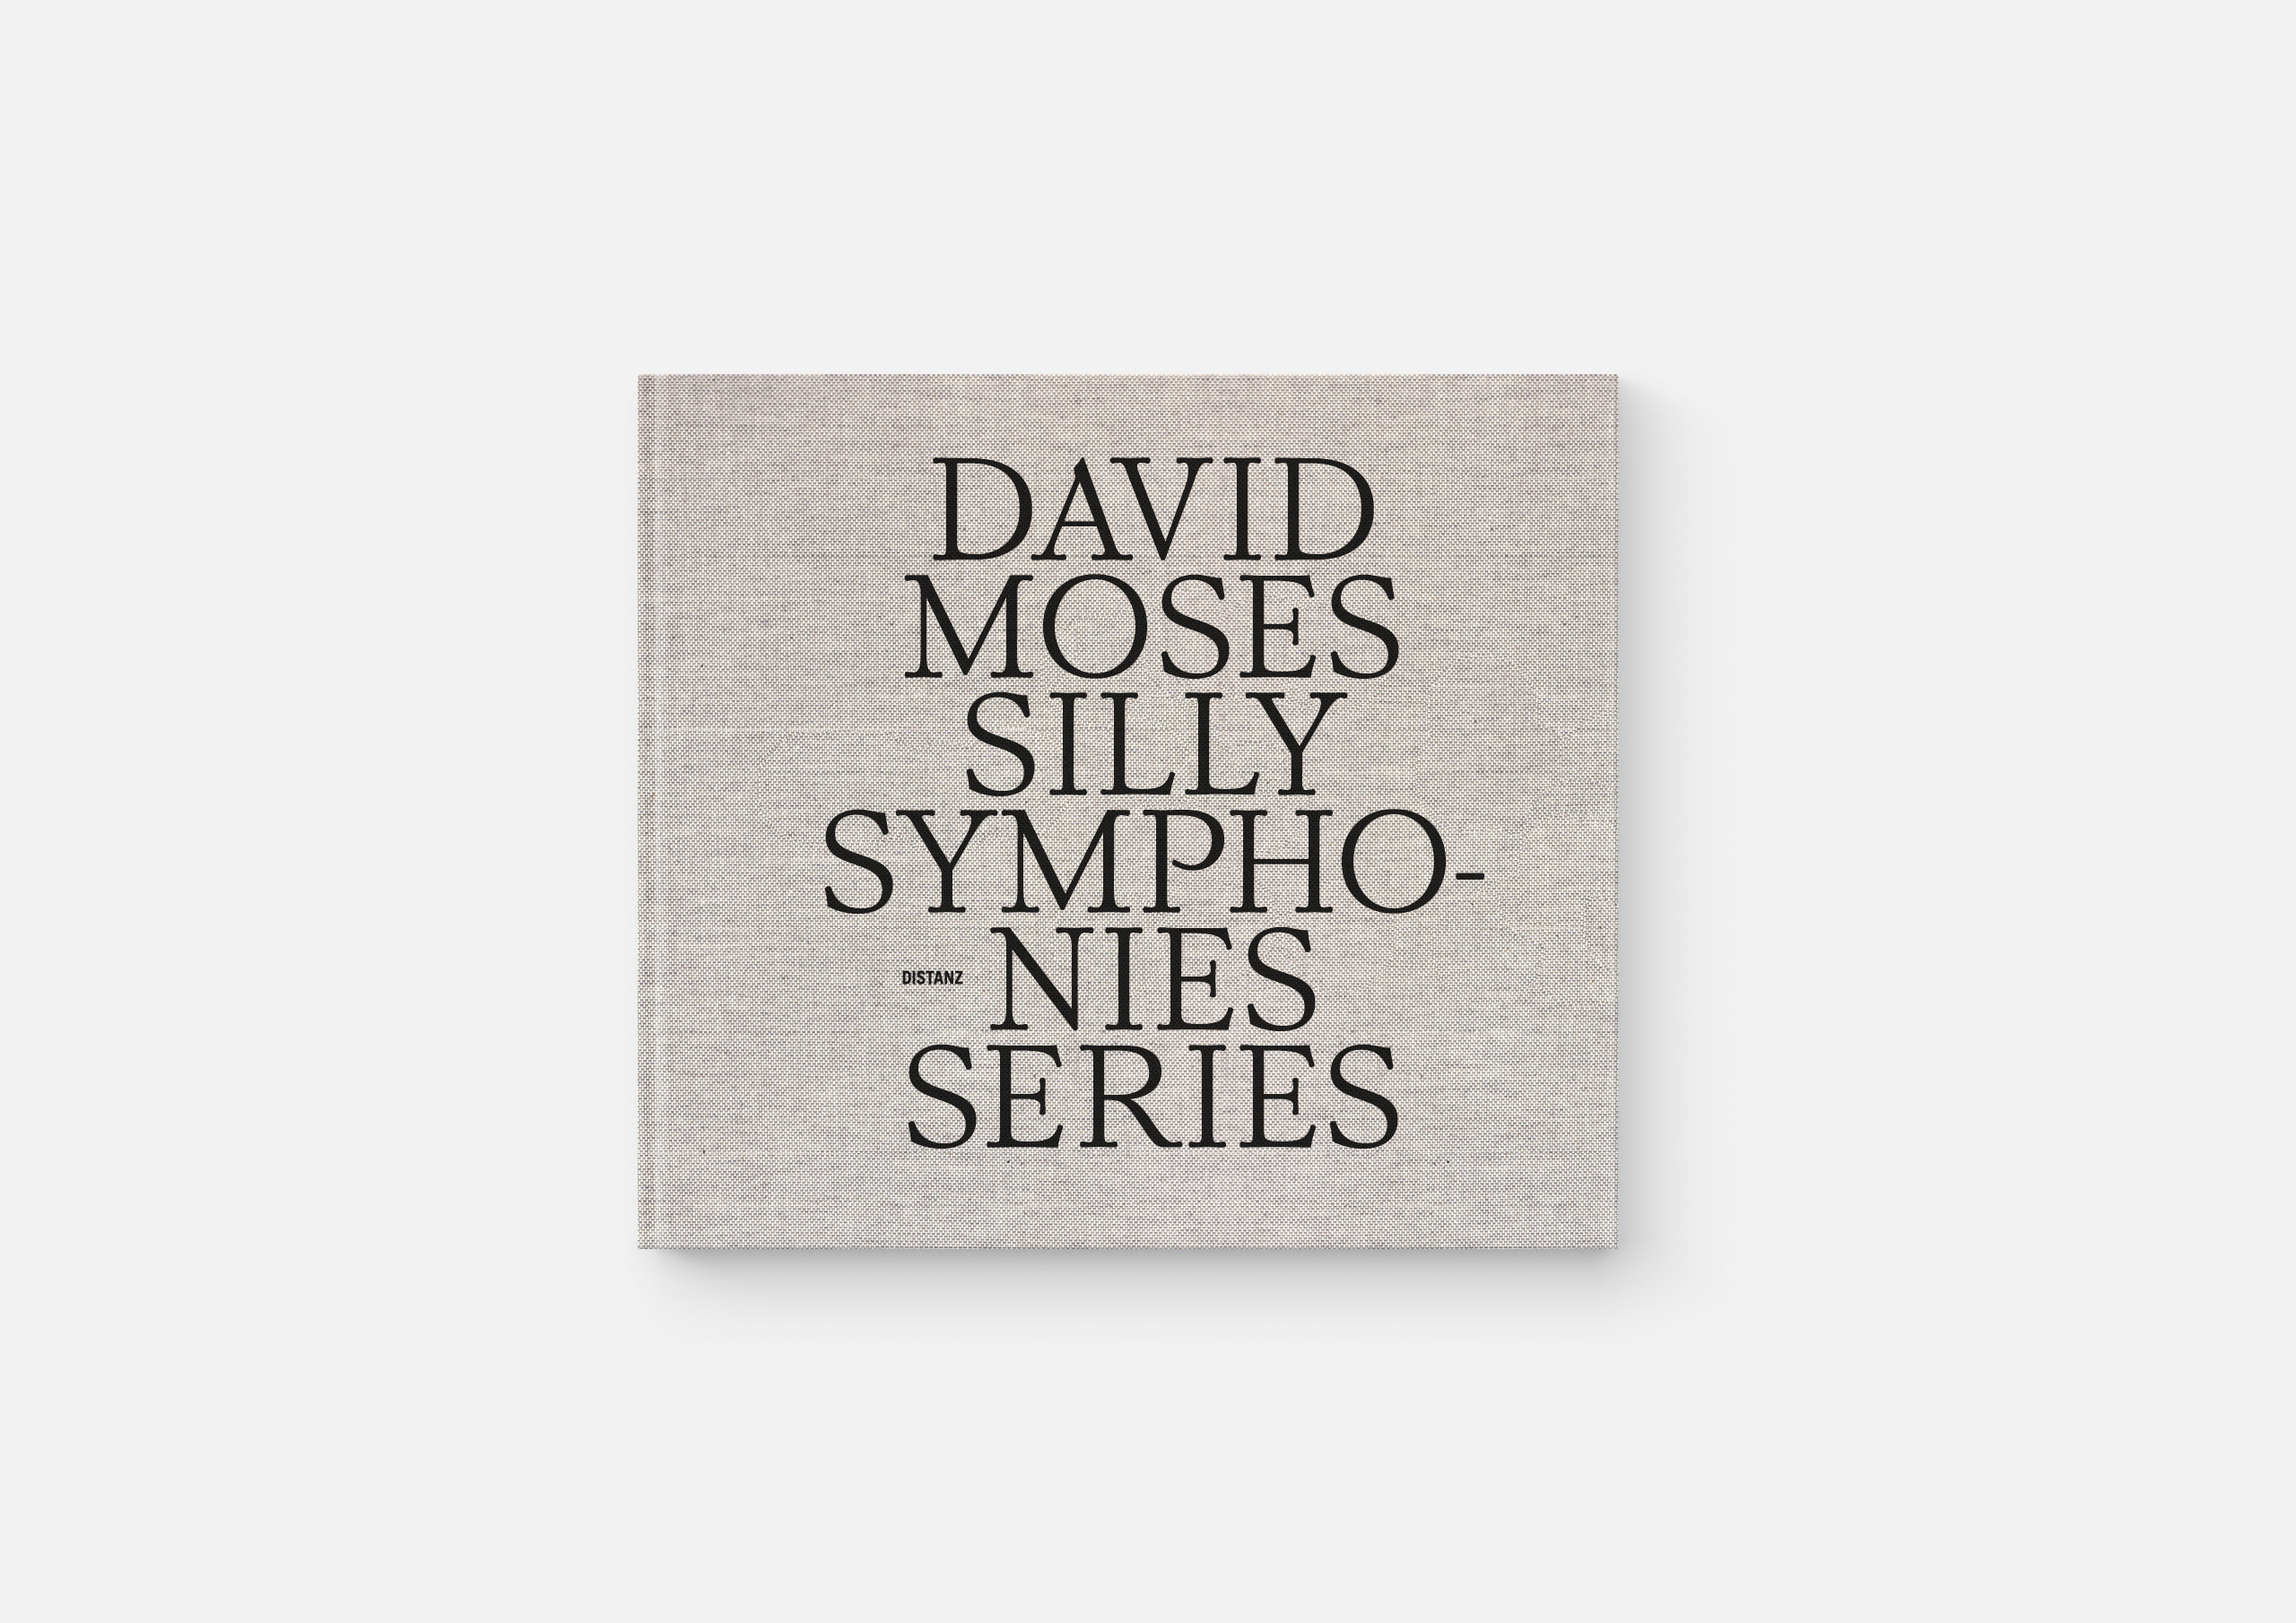 http://www.neuegestaltung.de/media/pages/clients/david-moses/29ddd3bead-1619427901/dm_silly_01_cover.jpg